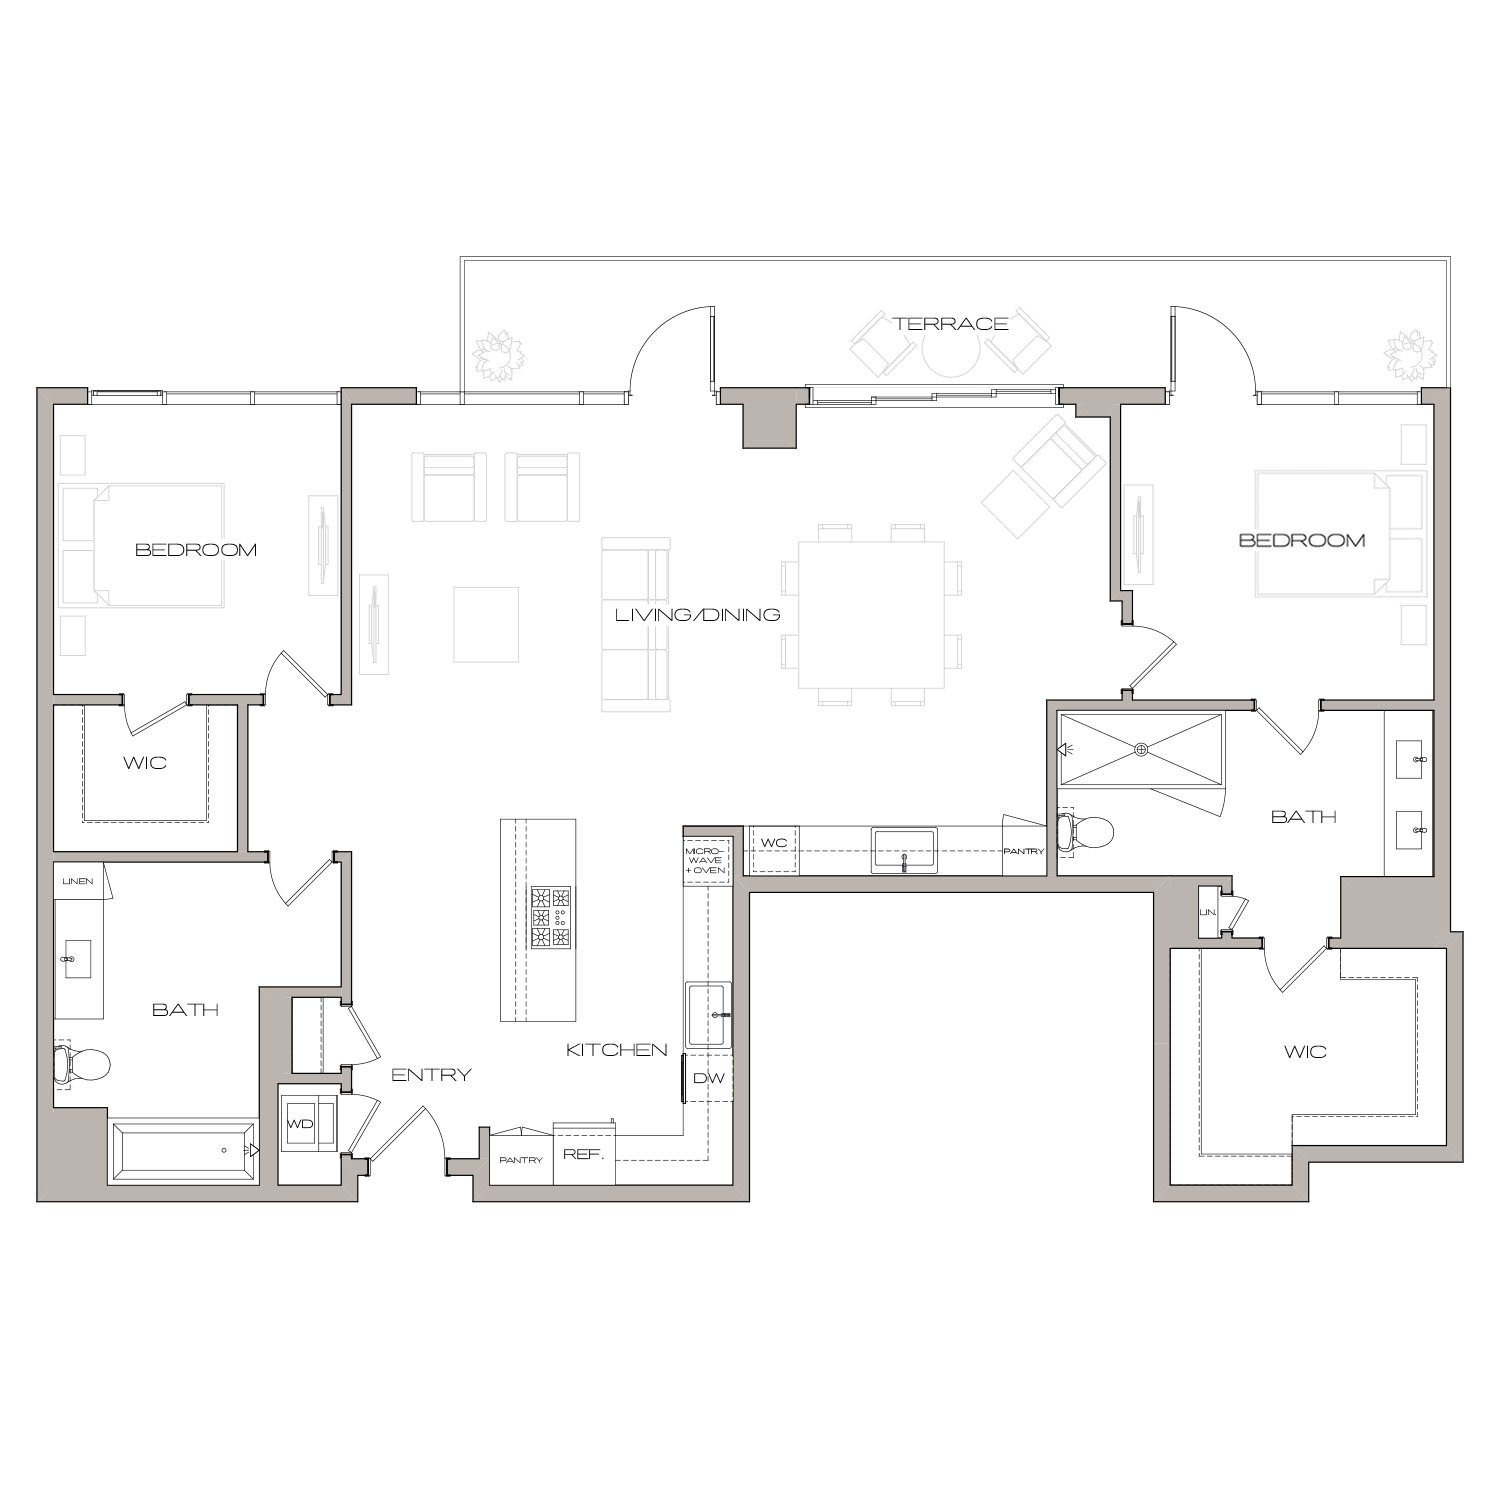 P H 6 floor plan diagram. Penthouse apartment with two bedrooms, two bathrooms, an open kitchen living and dining area, a wet bar, a terrace, and a washer dryer.